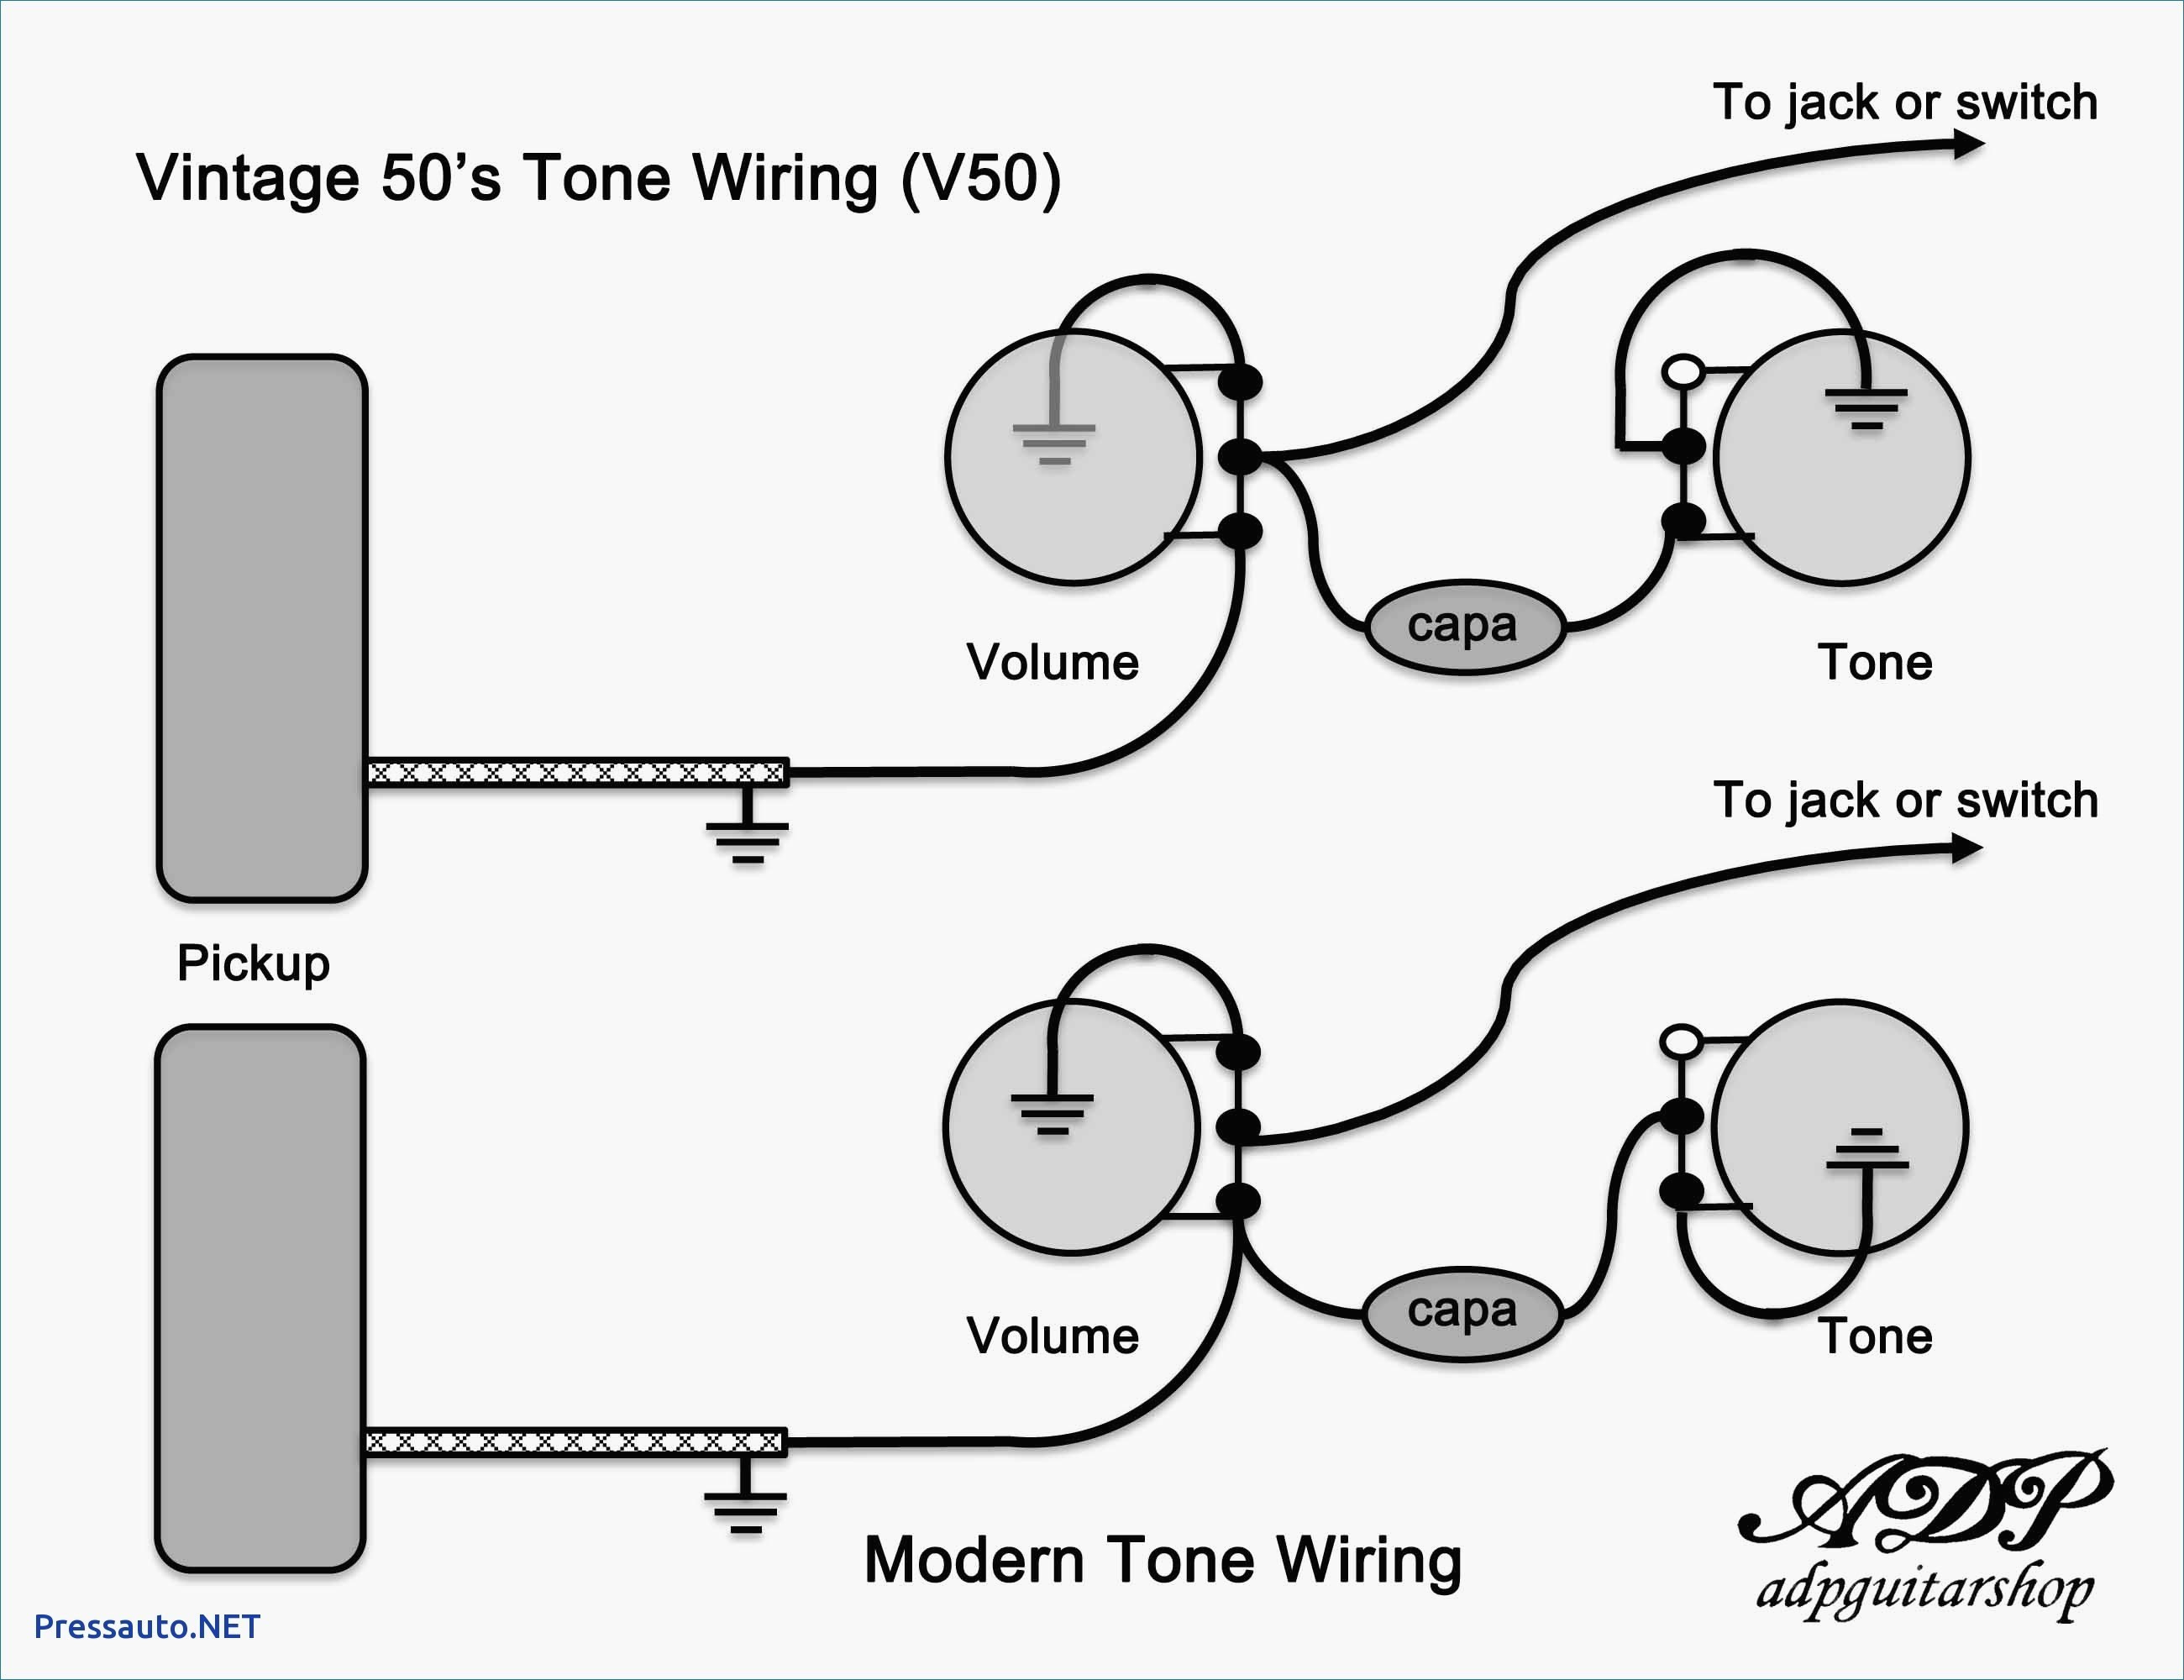 Vintage Les Paul Wiring Diagram Download on